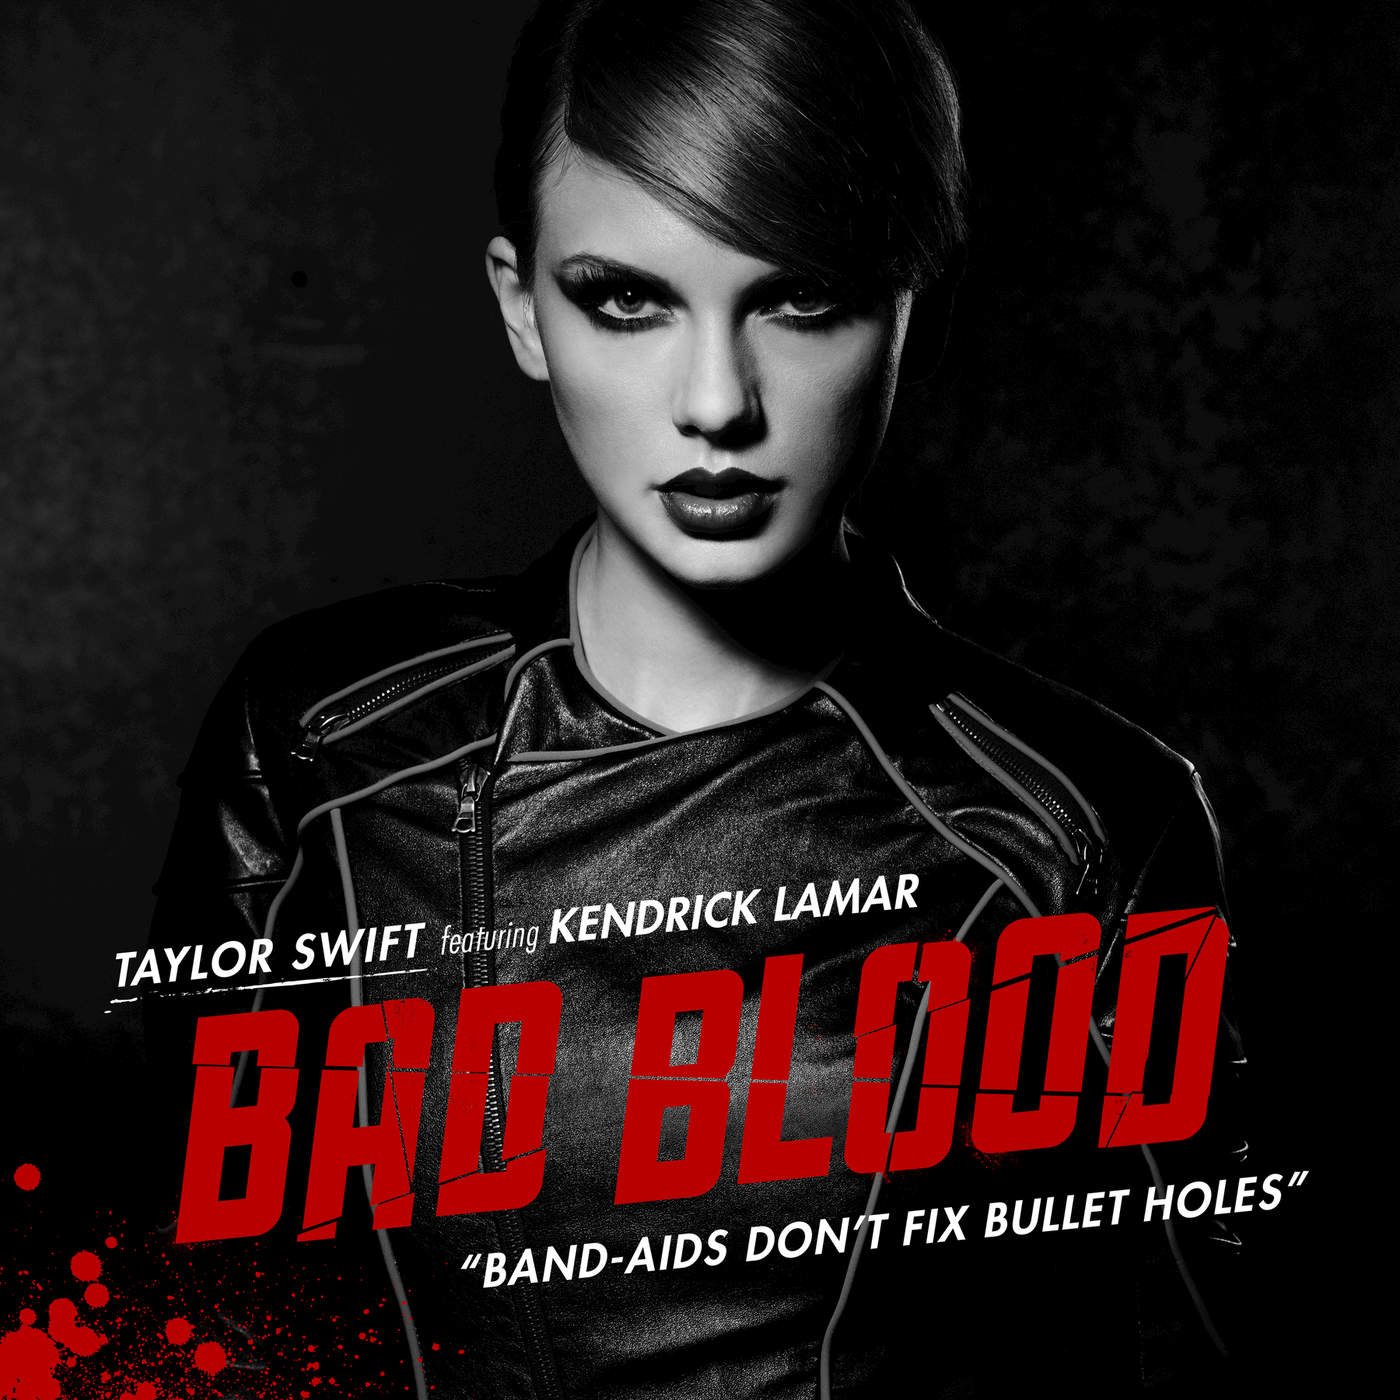 Taylor-Swift-feat.-Kendrick-Lamar-Bad-Blood_2